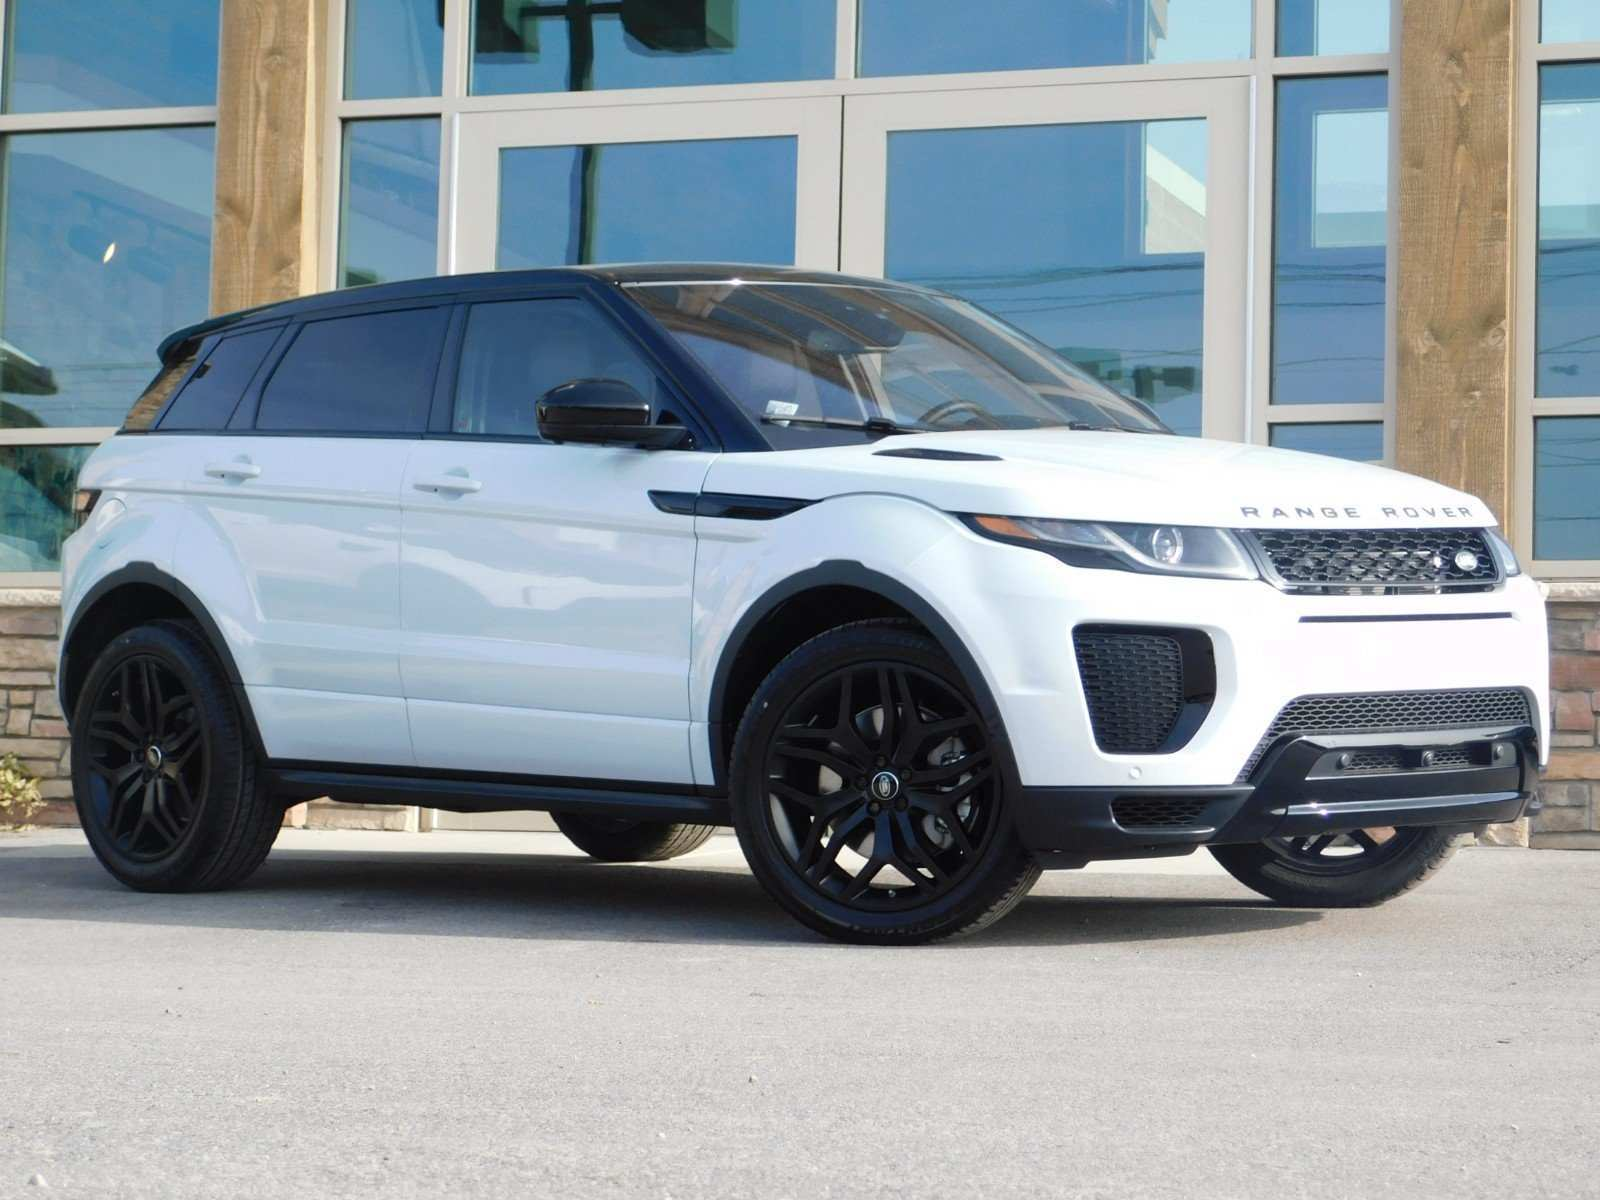 55 New 2019 Range Rover Evoque Xl Price